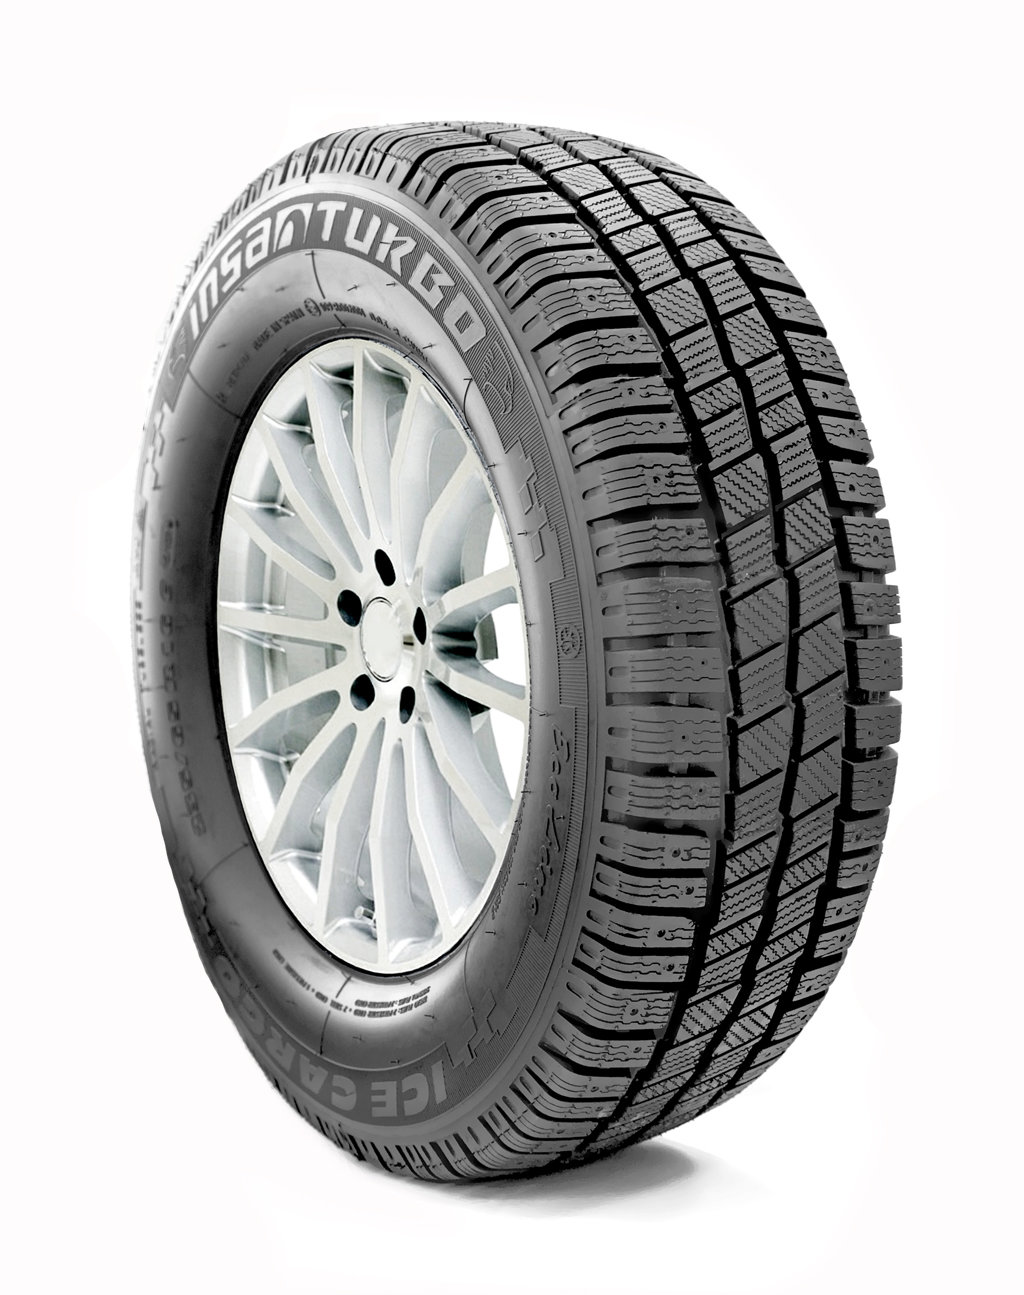 insa-turbo-ice-cargo-225-65r16112r